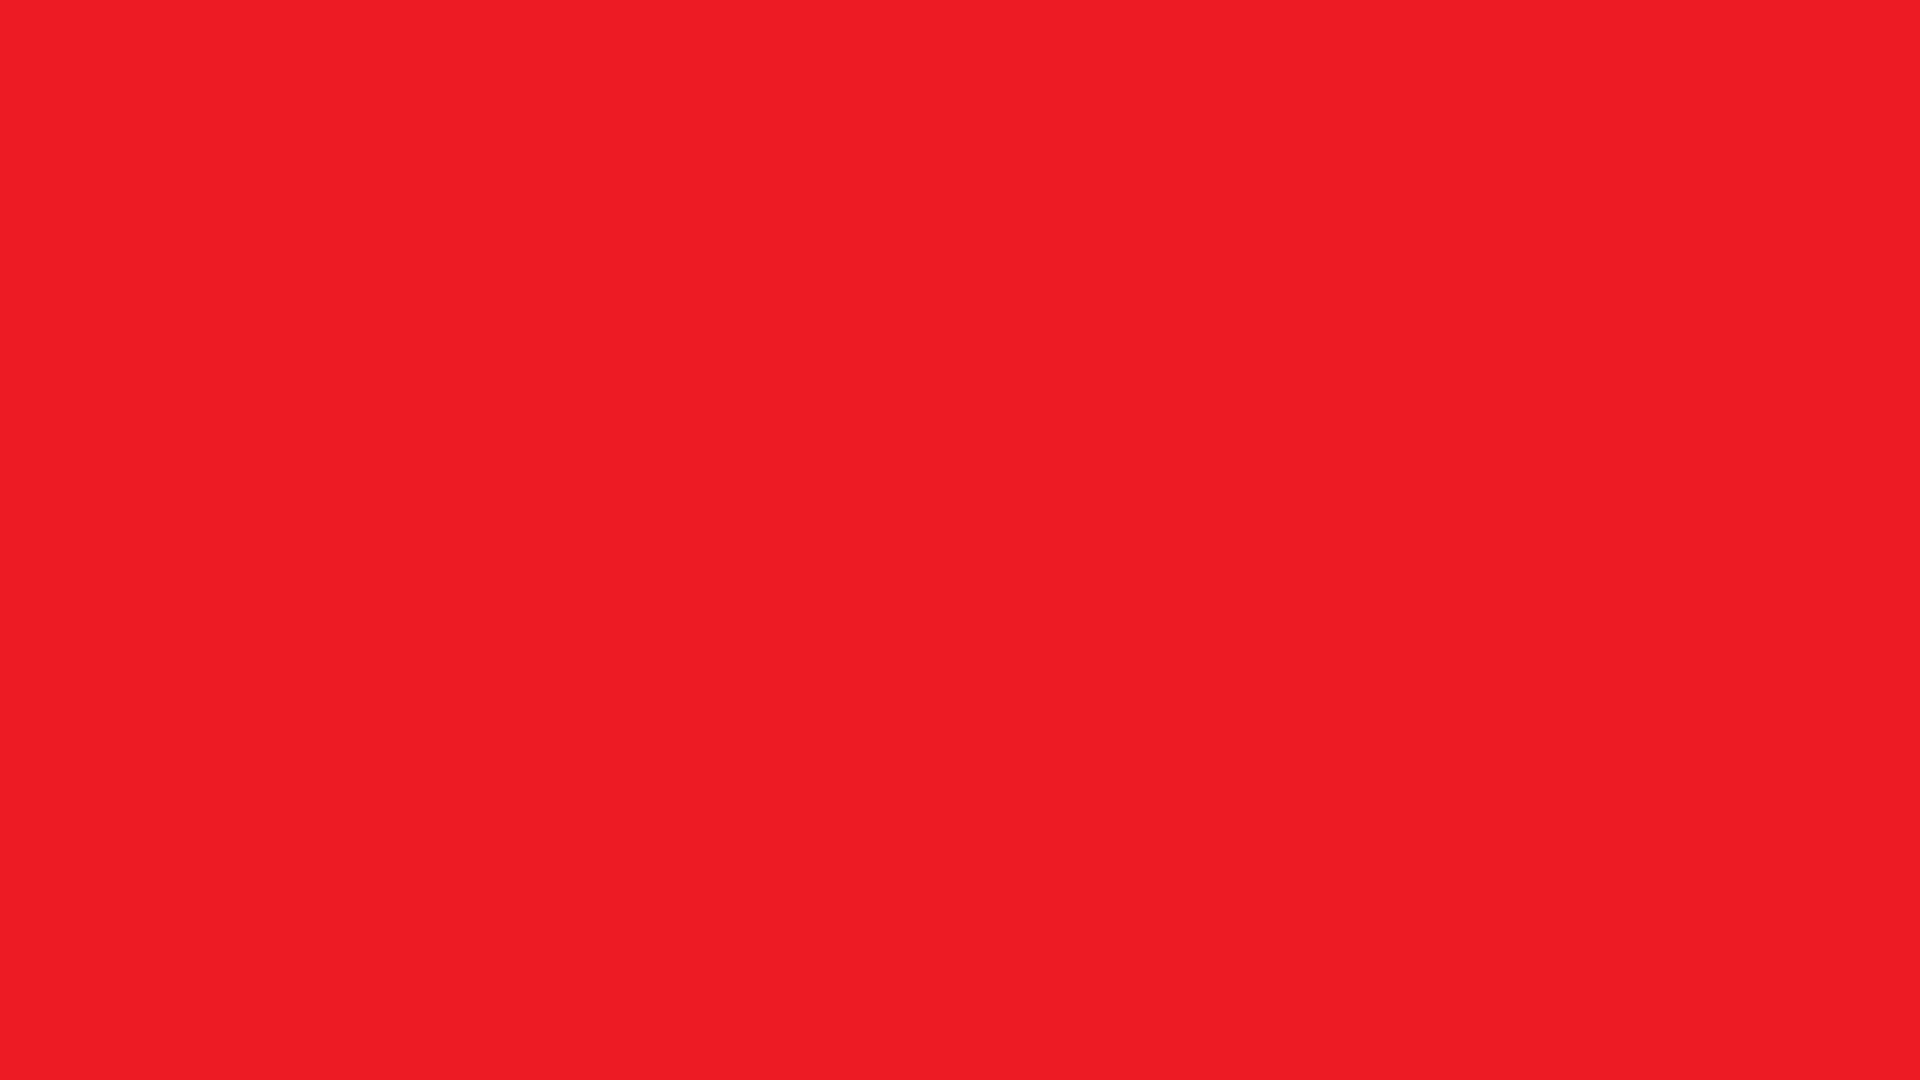 1920x1080 Red Pigment Solid Color Background